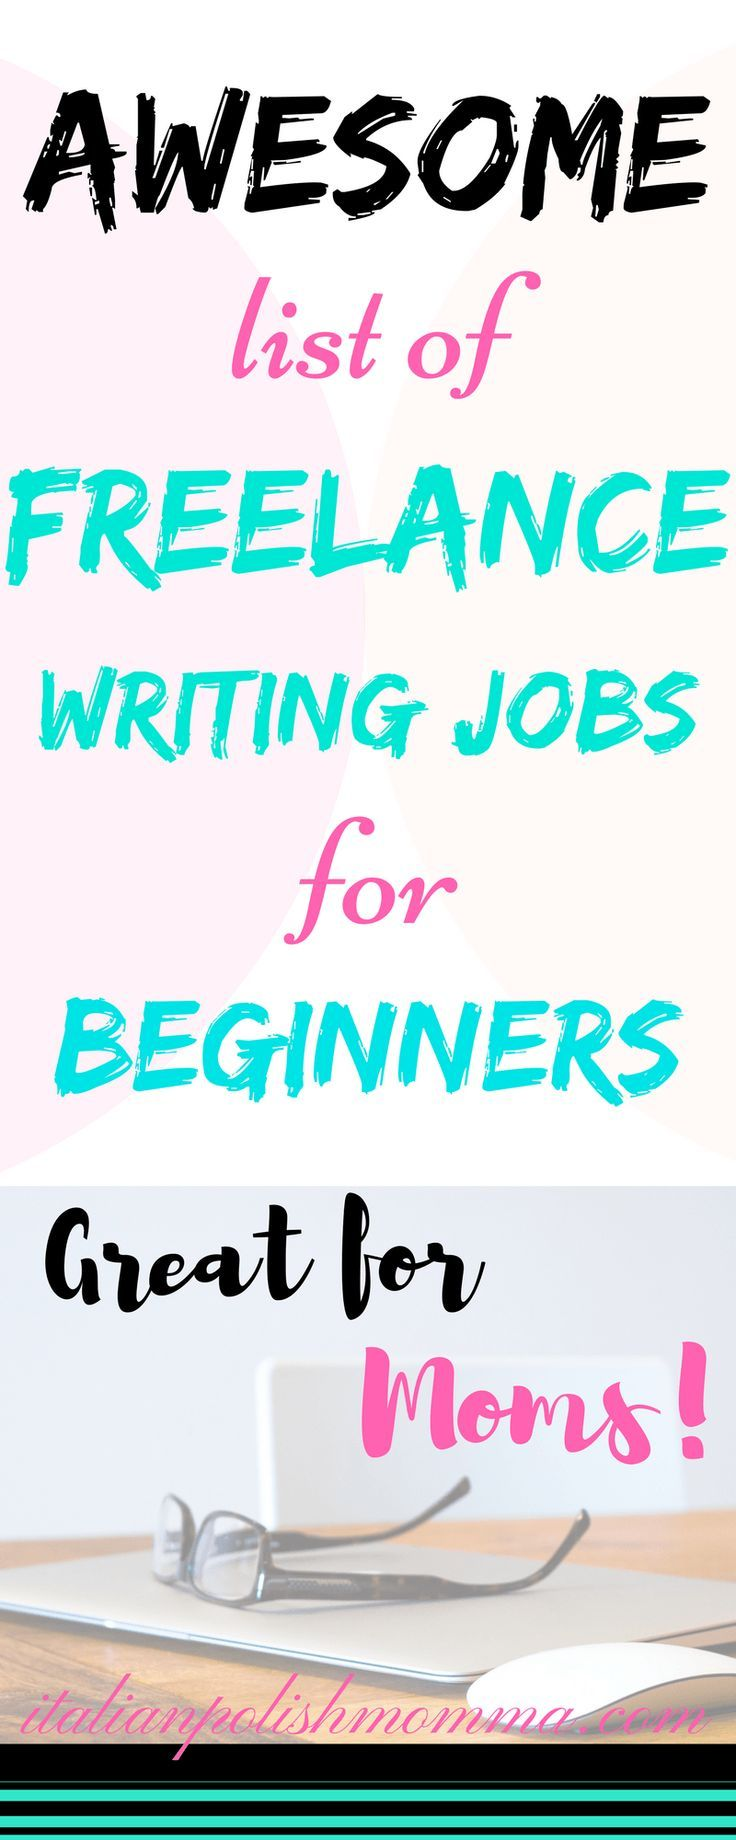 Freelance Writing Jobs For Beginners Work From Home